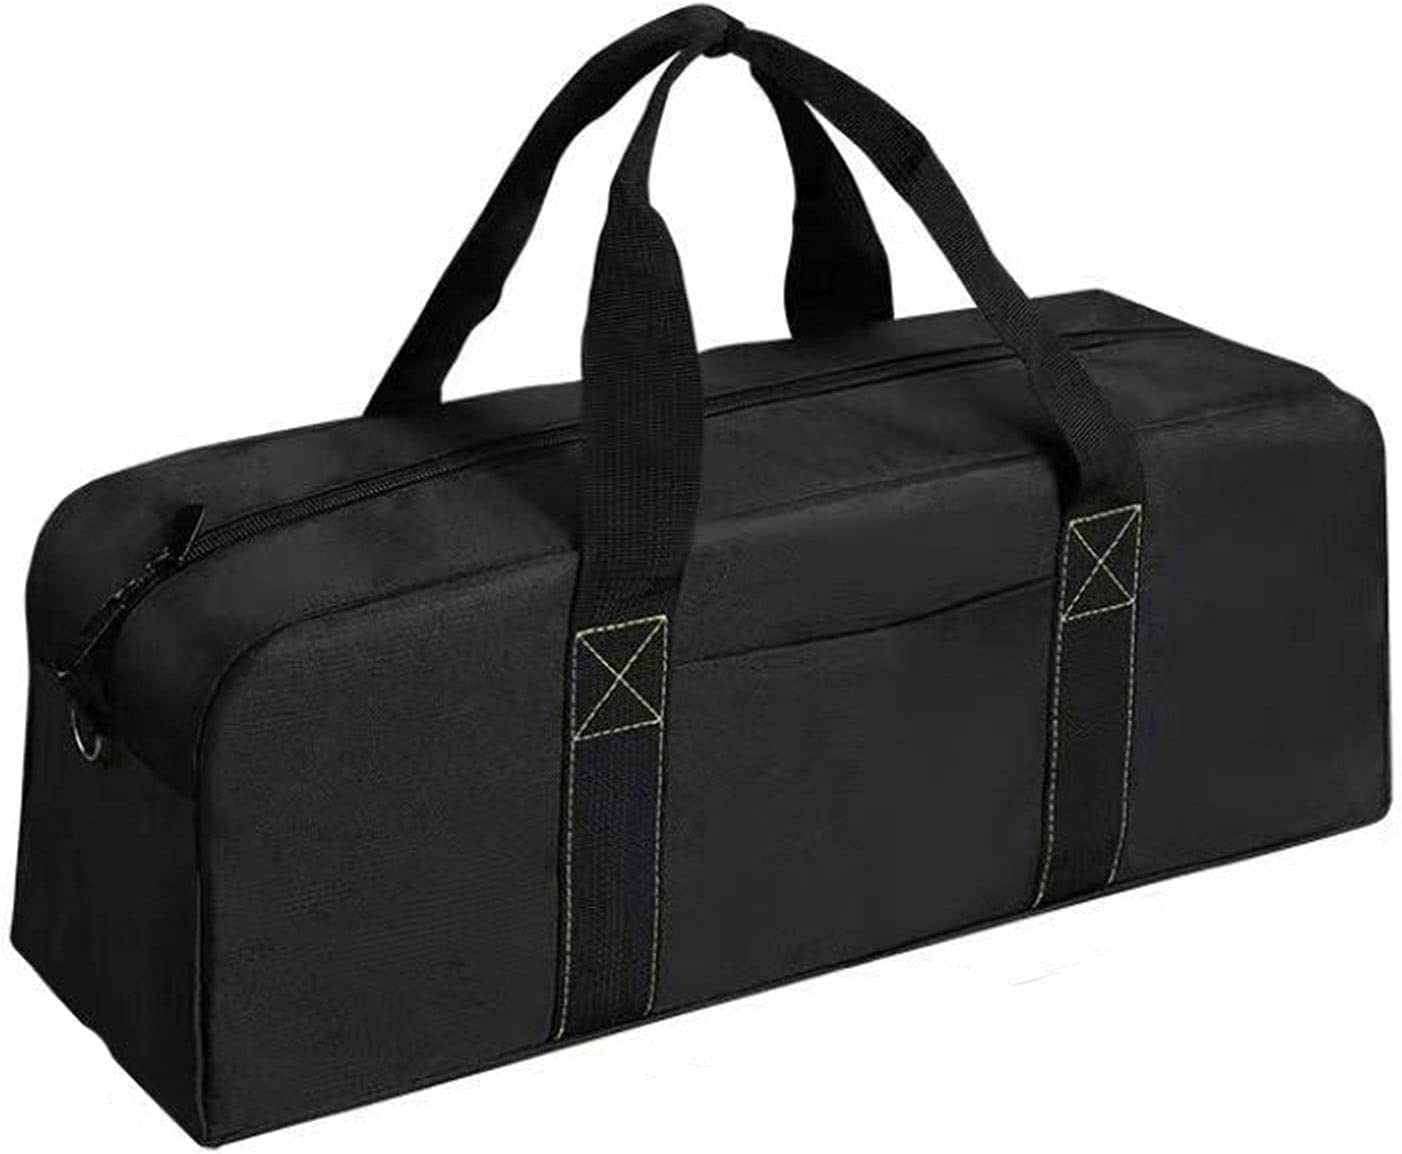 JKXWX Tool Bag Tool Bag,Wide Mouth Tool Tote Bag Electricians Re